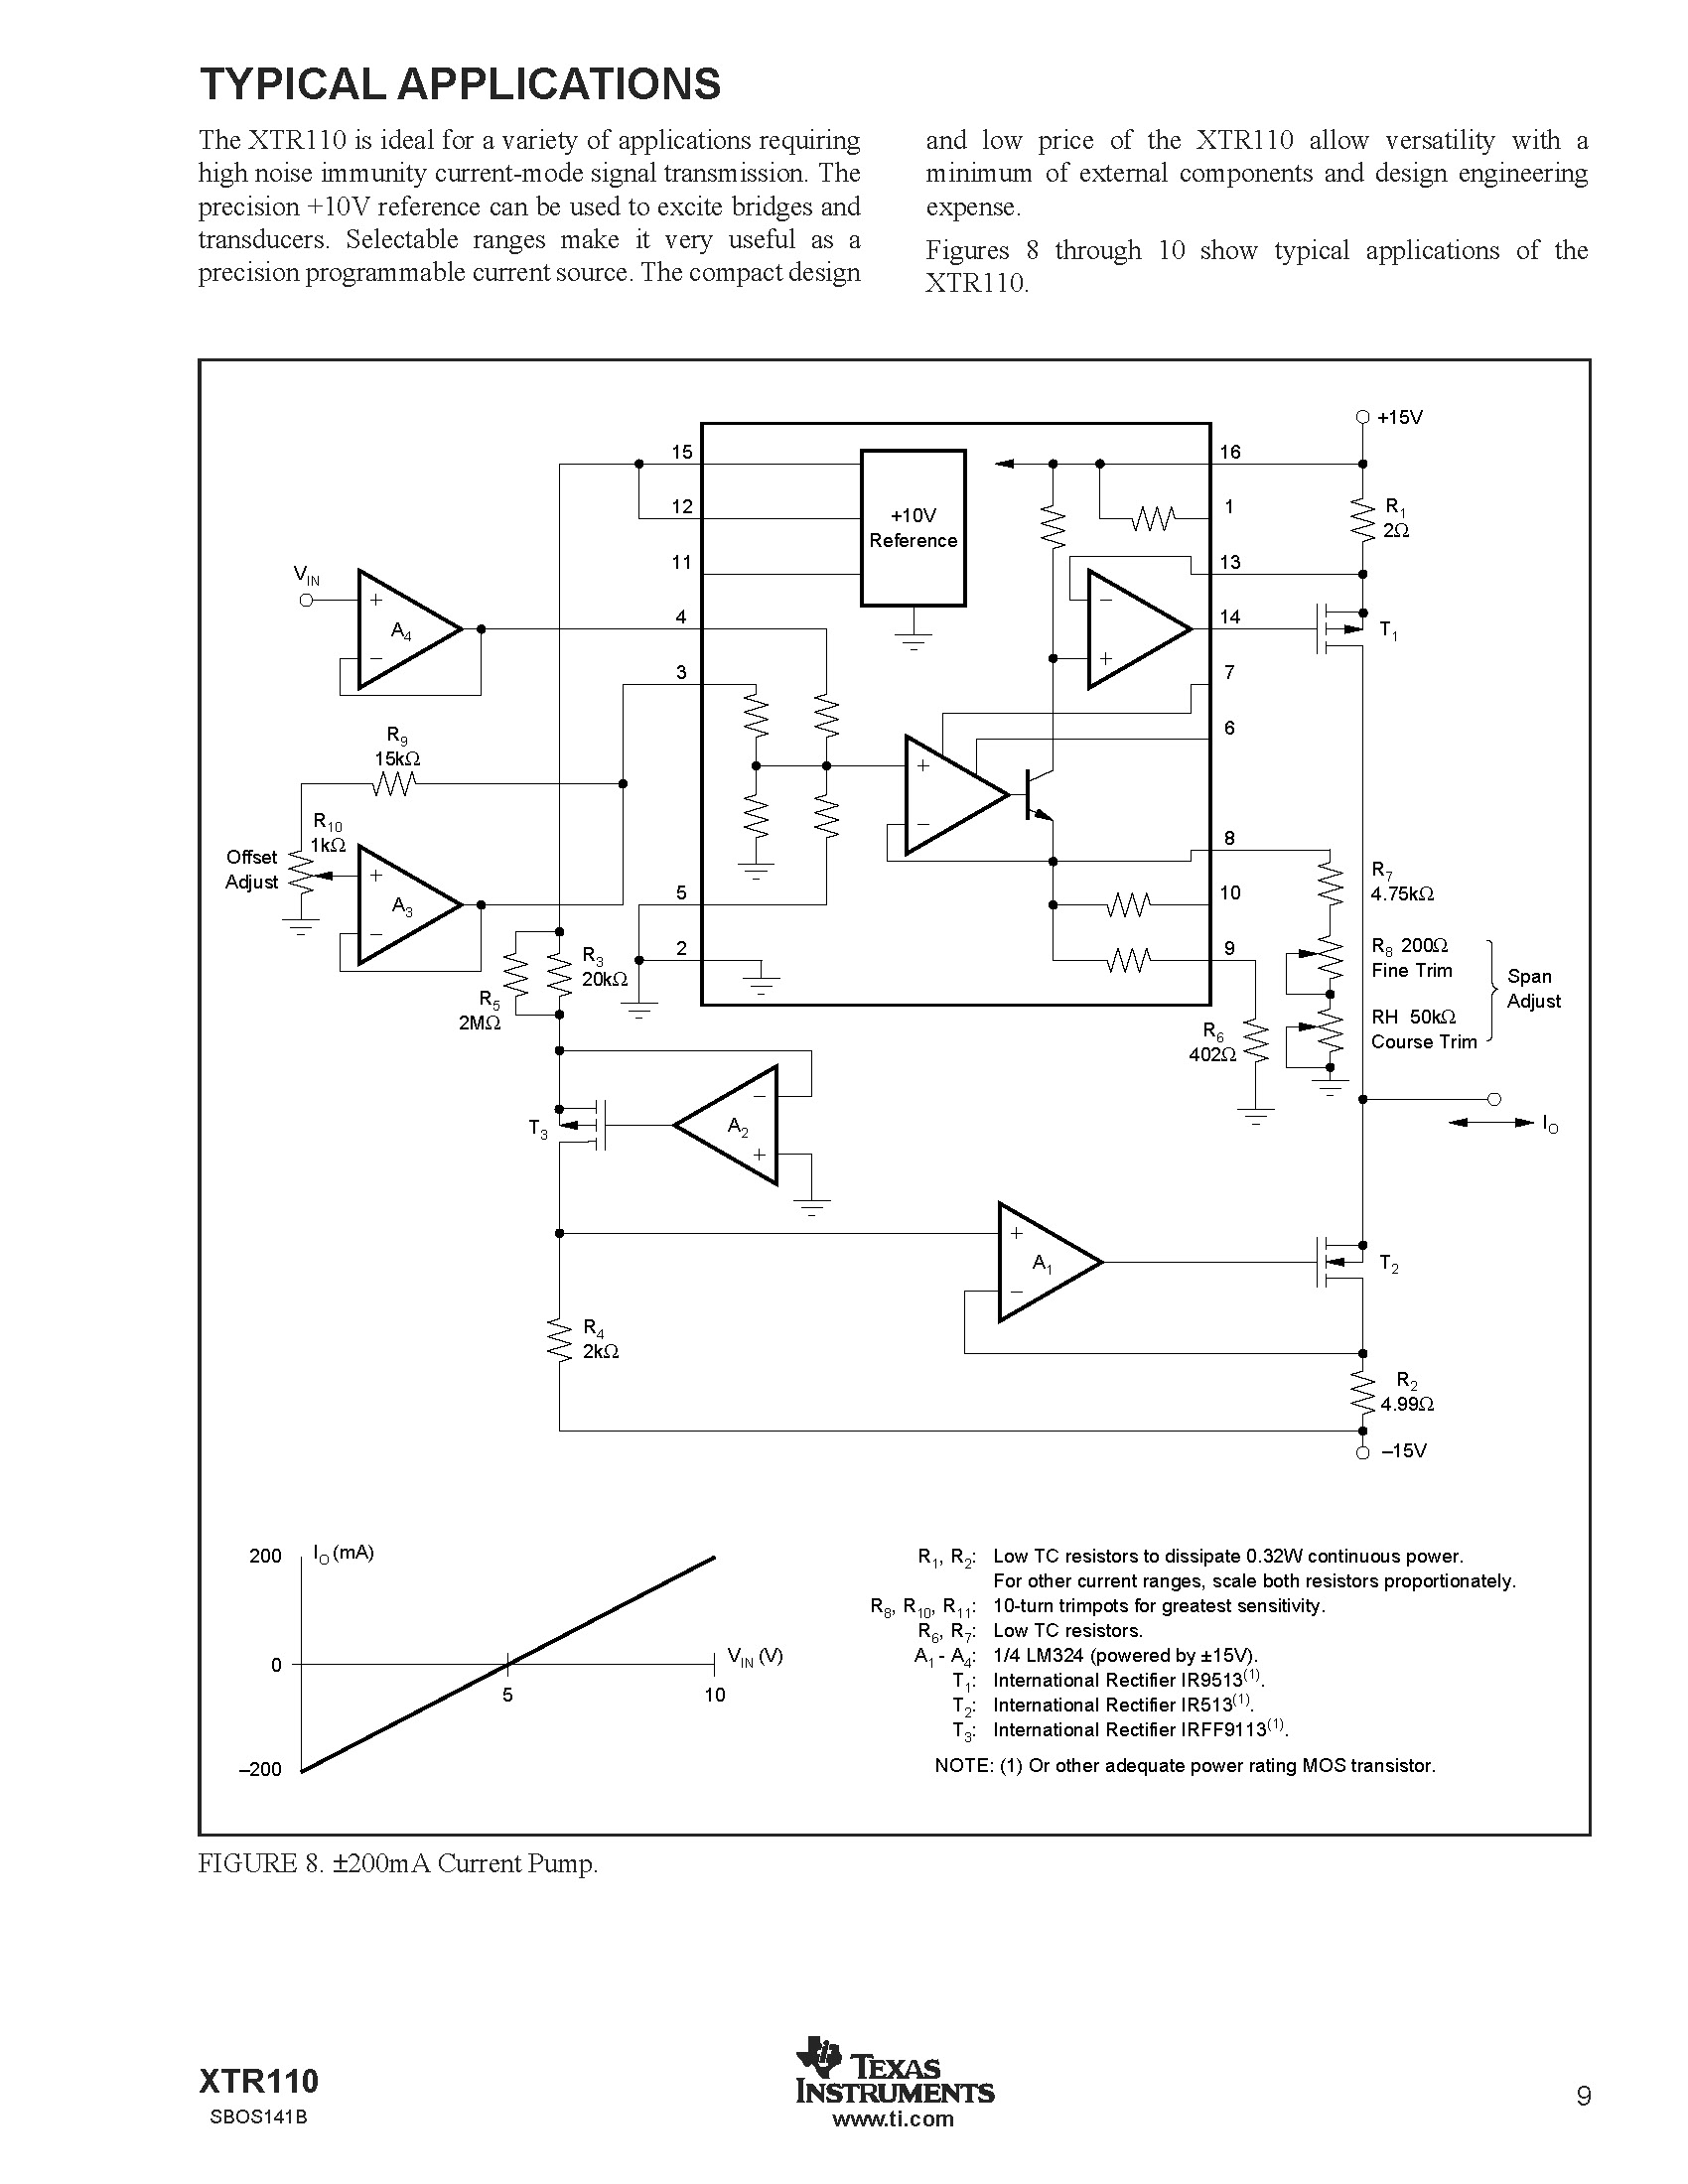 Variable Bidirectional Current Source Amp Injector Circuit Diagram Super I Think Drain And Of The T2 Must Be Exchanged With Each Other Whats Your View Point About That